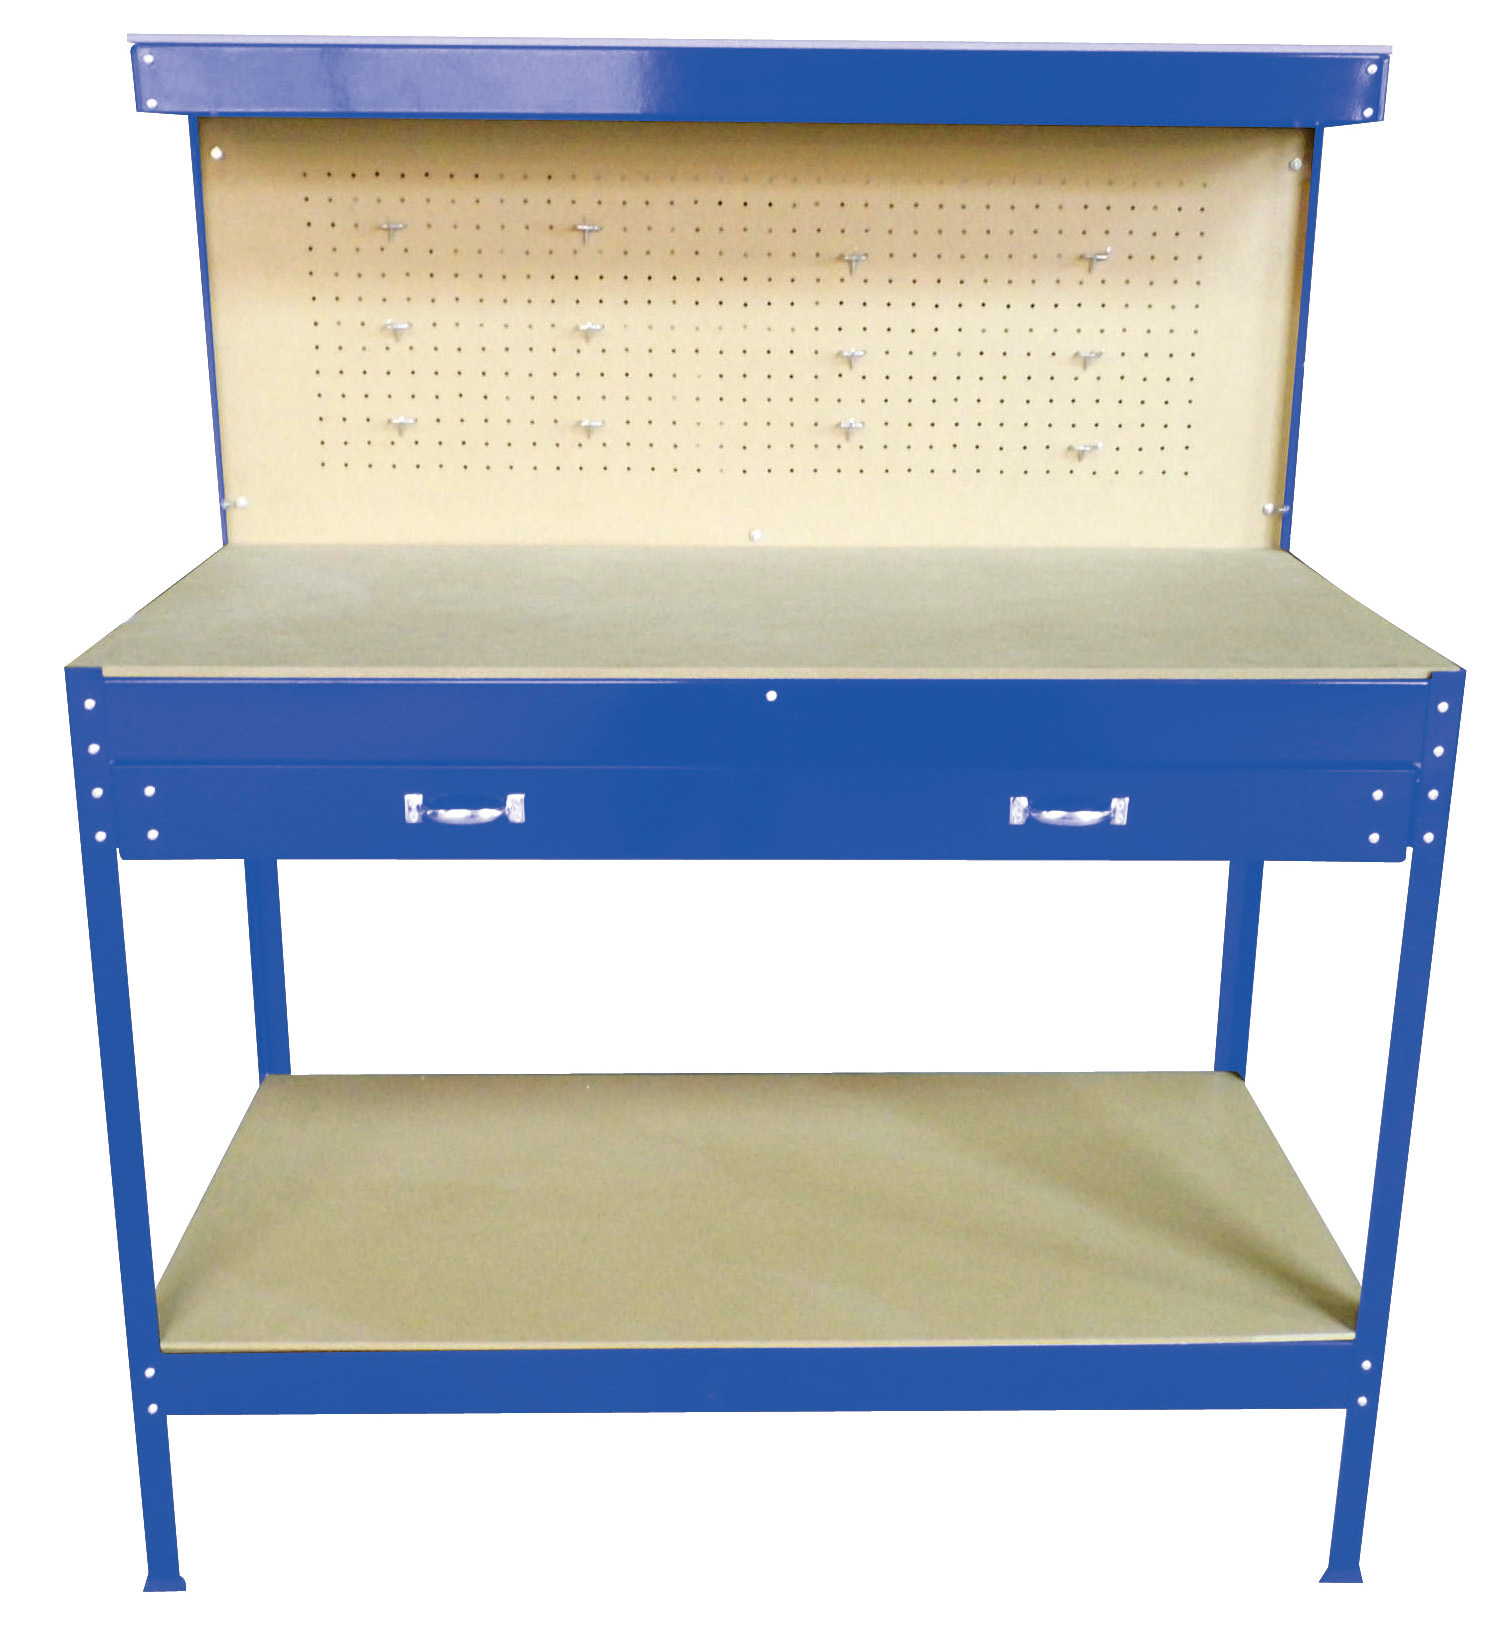 Sentinel Heavy Duty Workbench For Garage Workshop Shed Tool Box With Pegboard Drawers